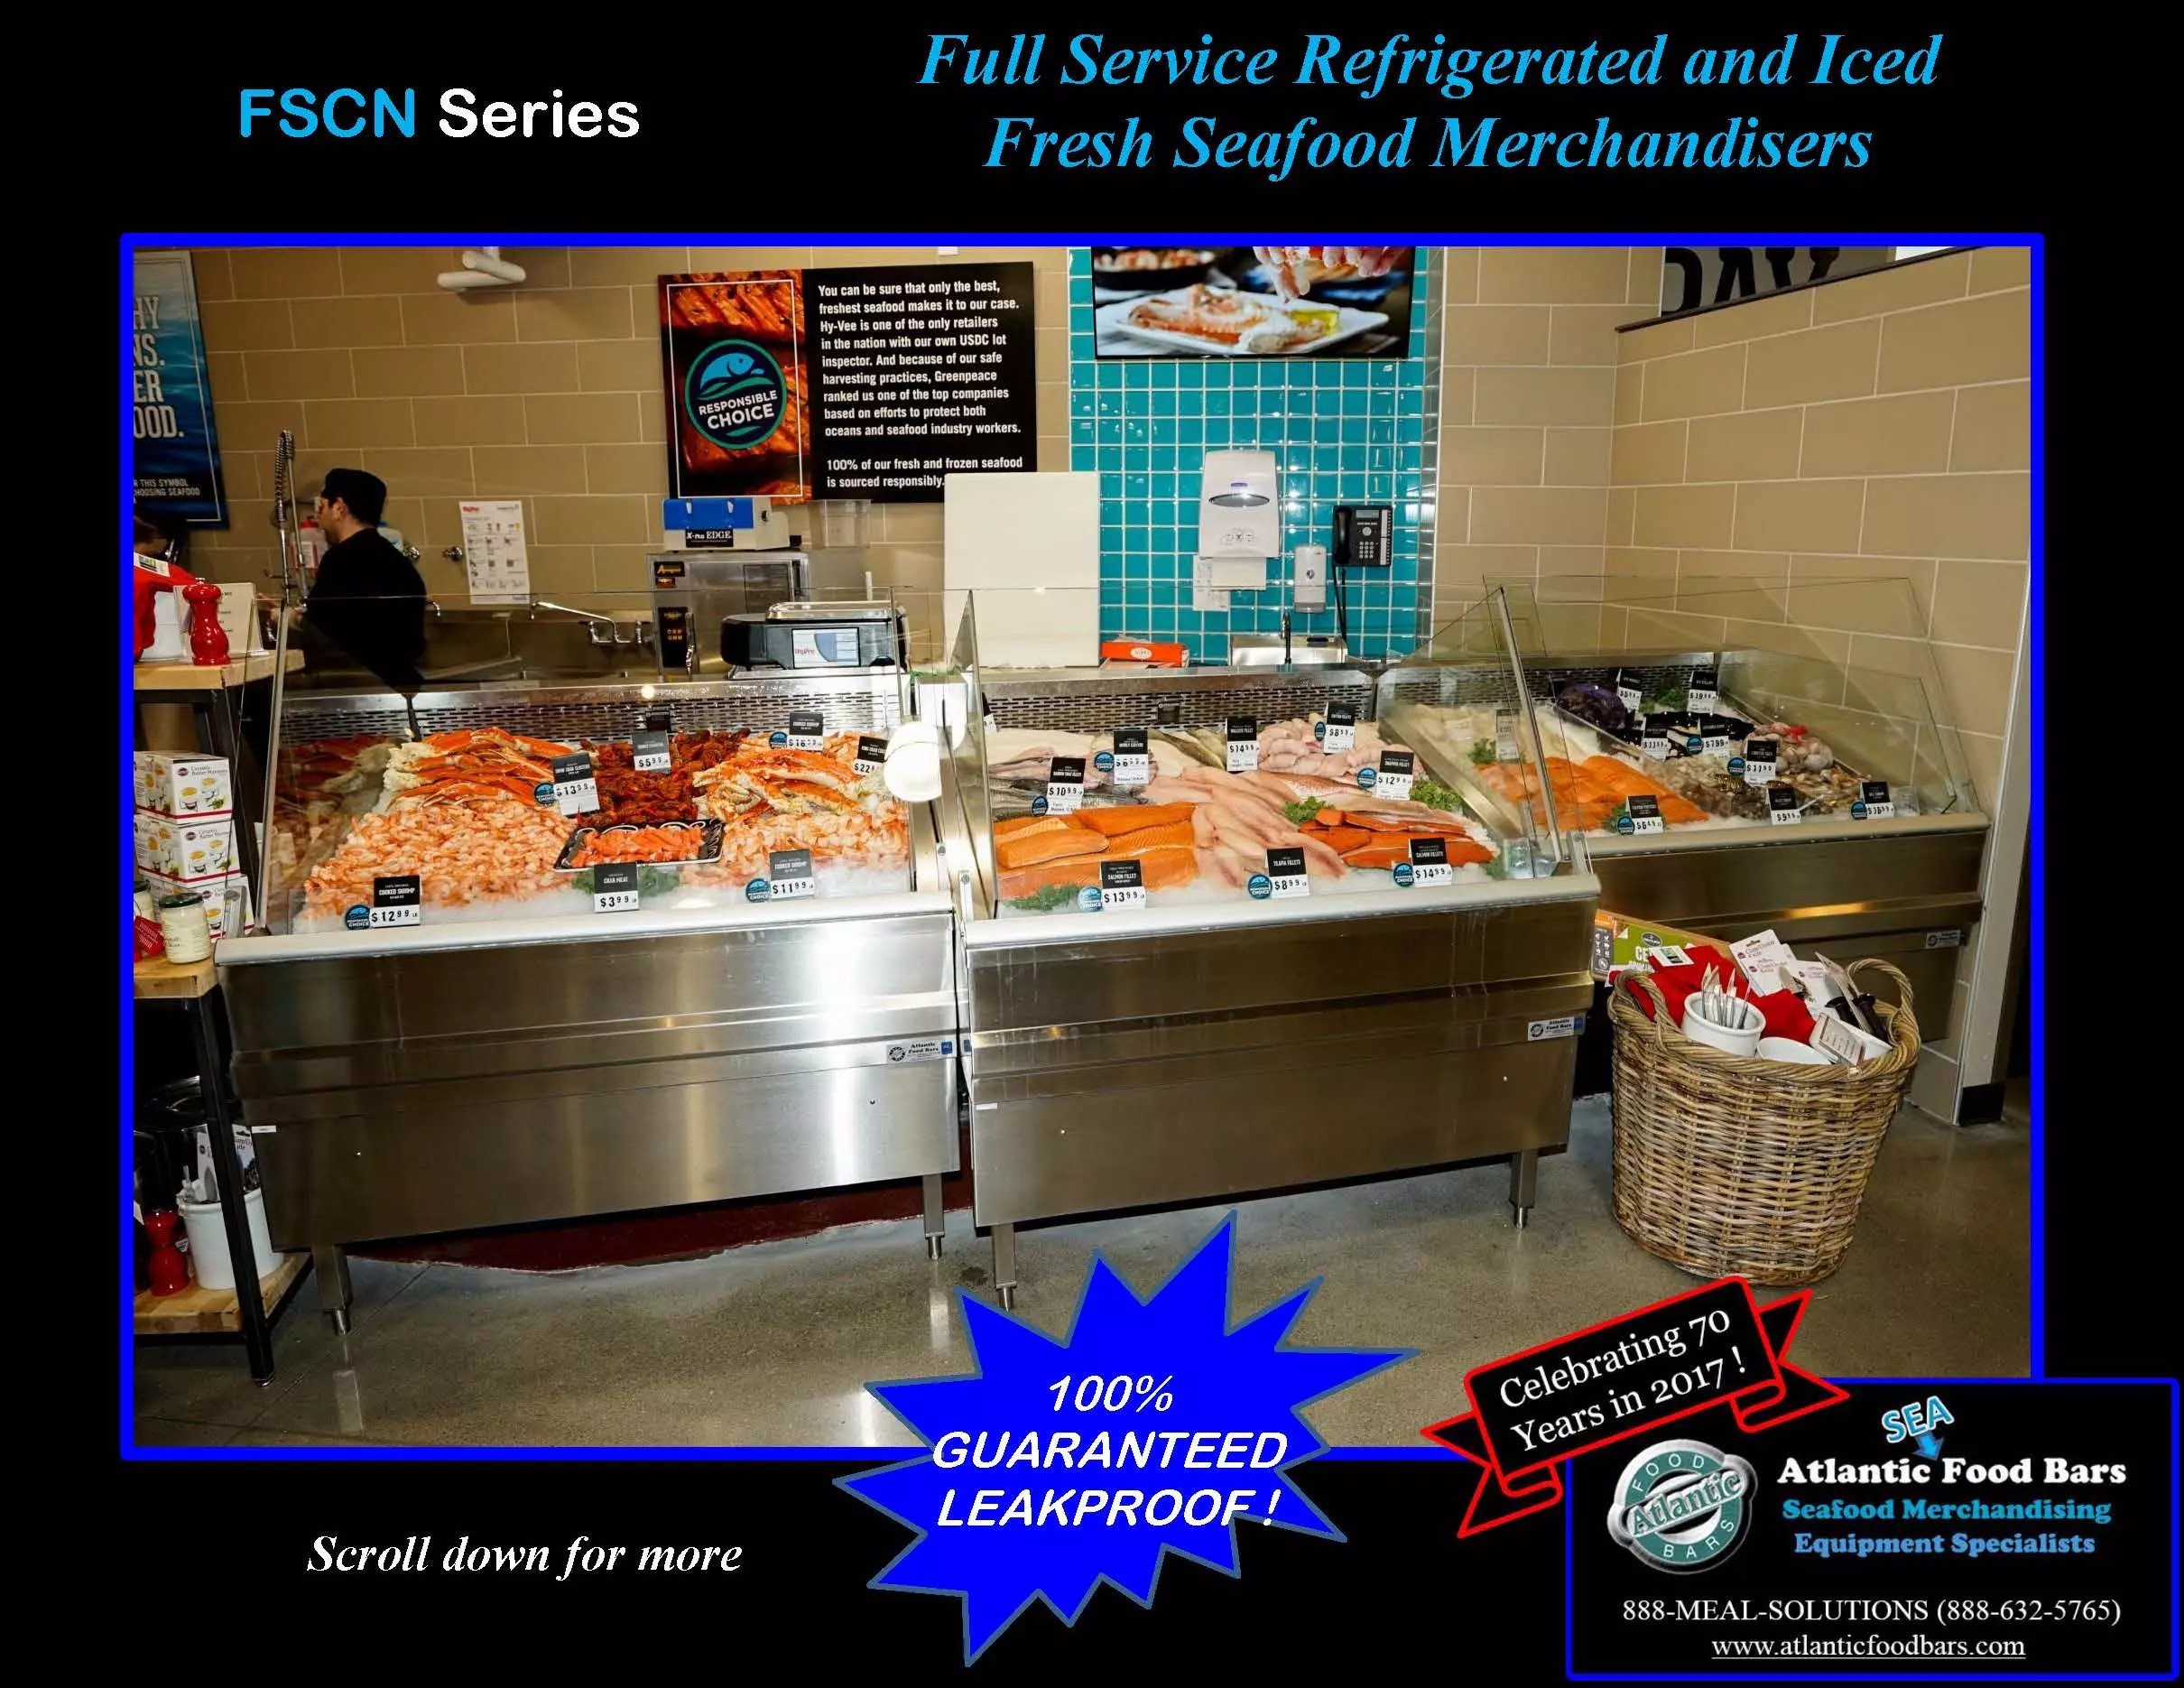 Atlantic Food Bars - Full Service Refrigerated and Iced Fresh Seafood Merchandisers - FSCN